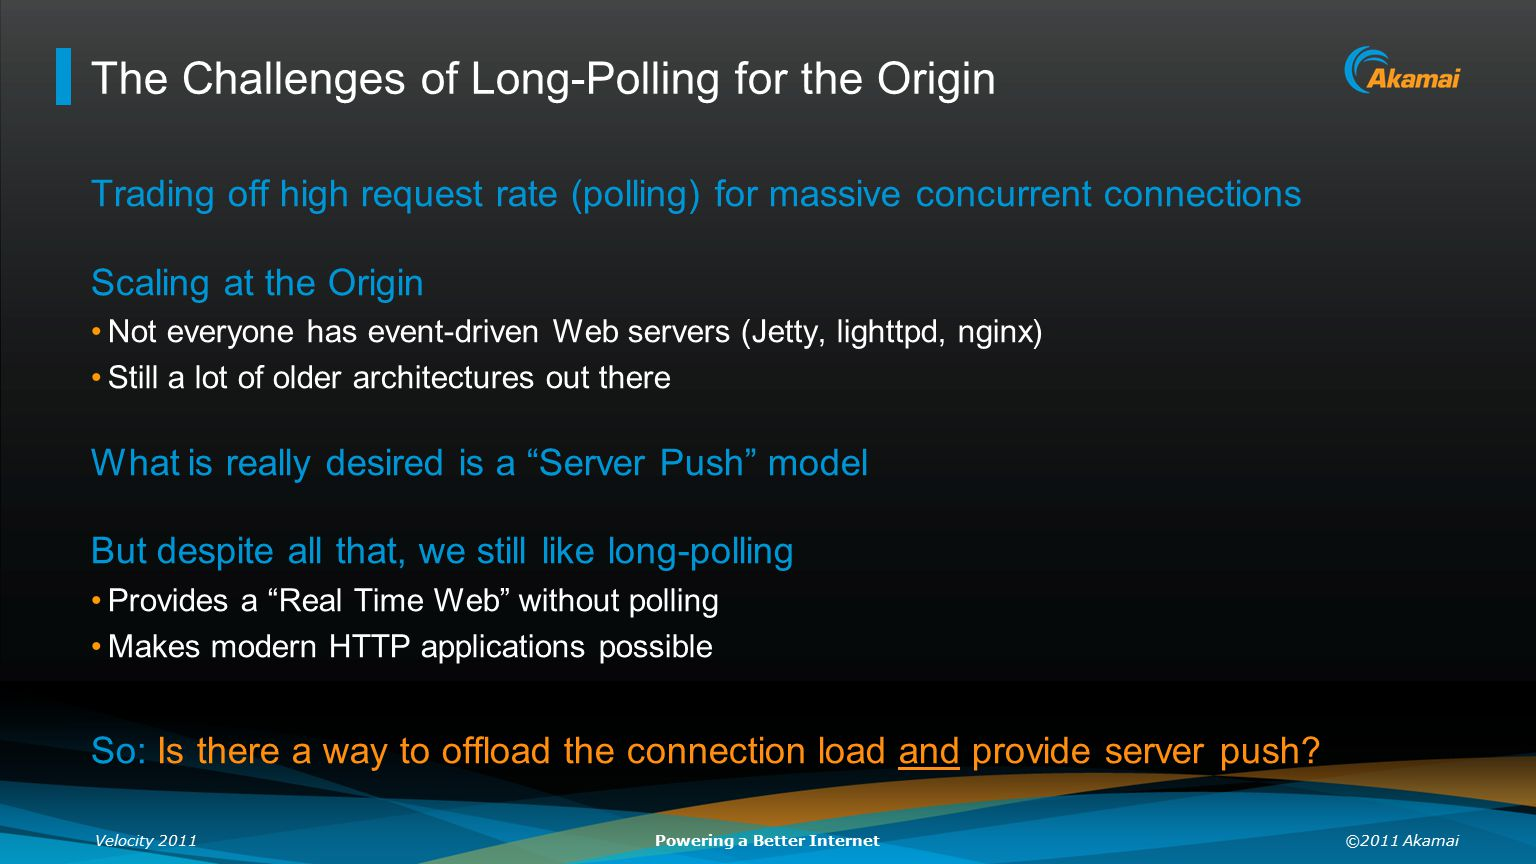 The Challenges of Long-Polling for the Origin